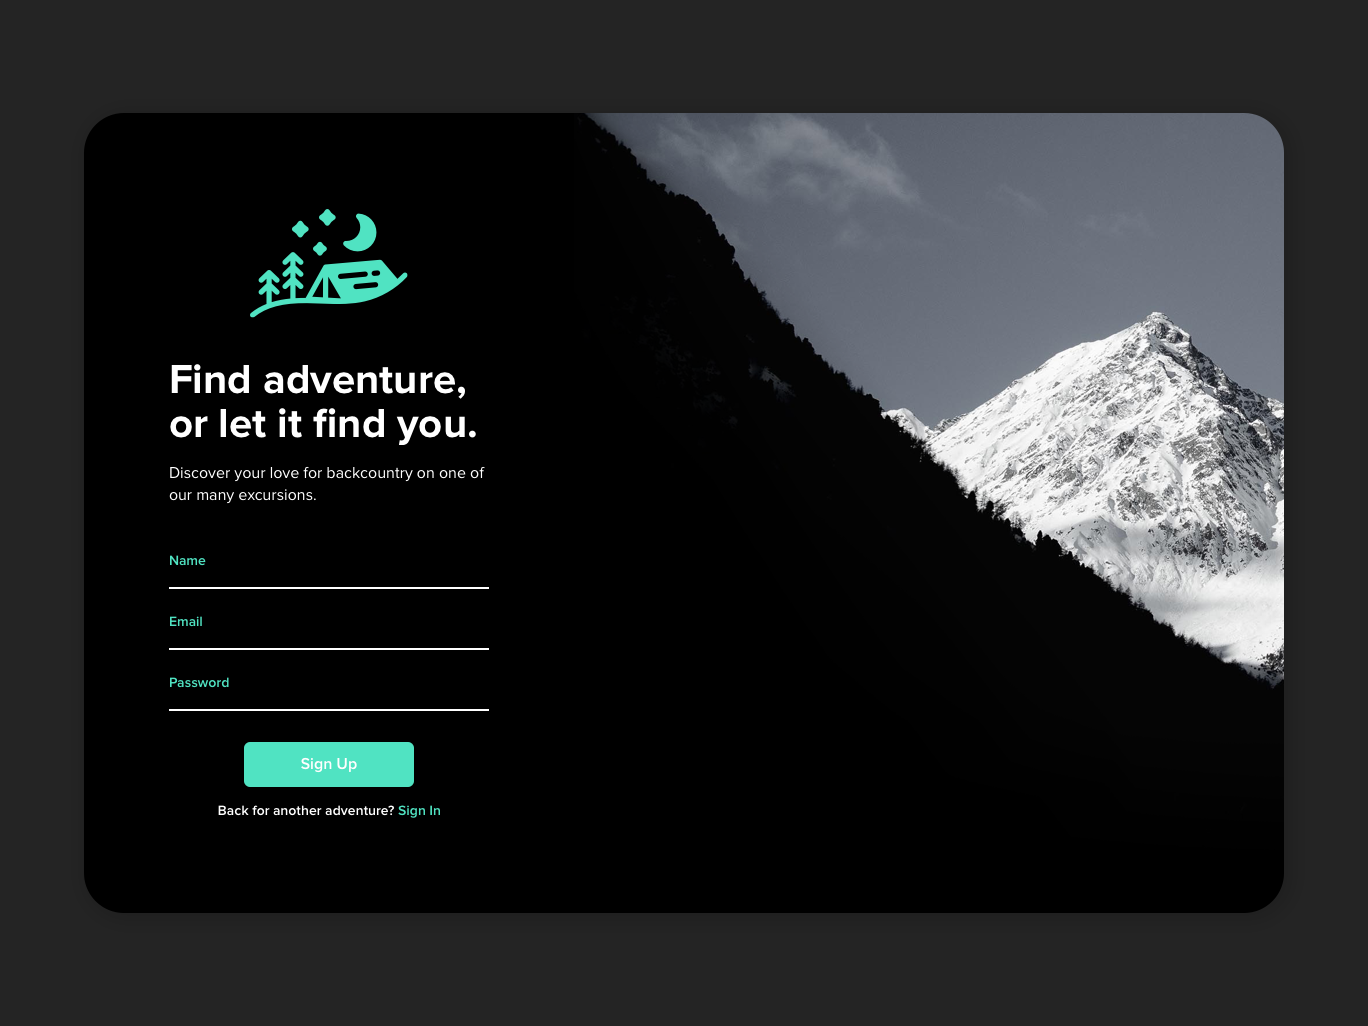 Excursion Sign Up camping backcountry wilderness explore excursion signup ui outdoors mountains dailyui